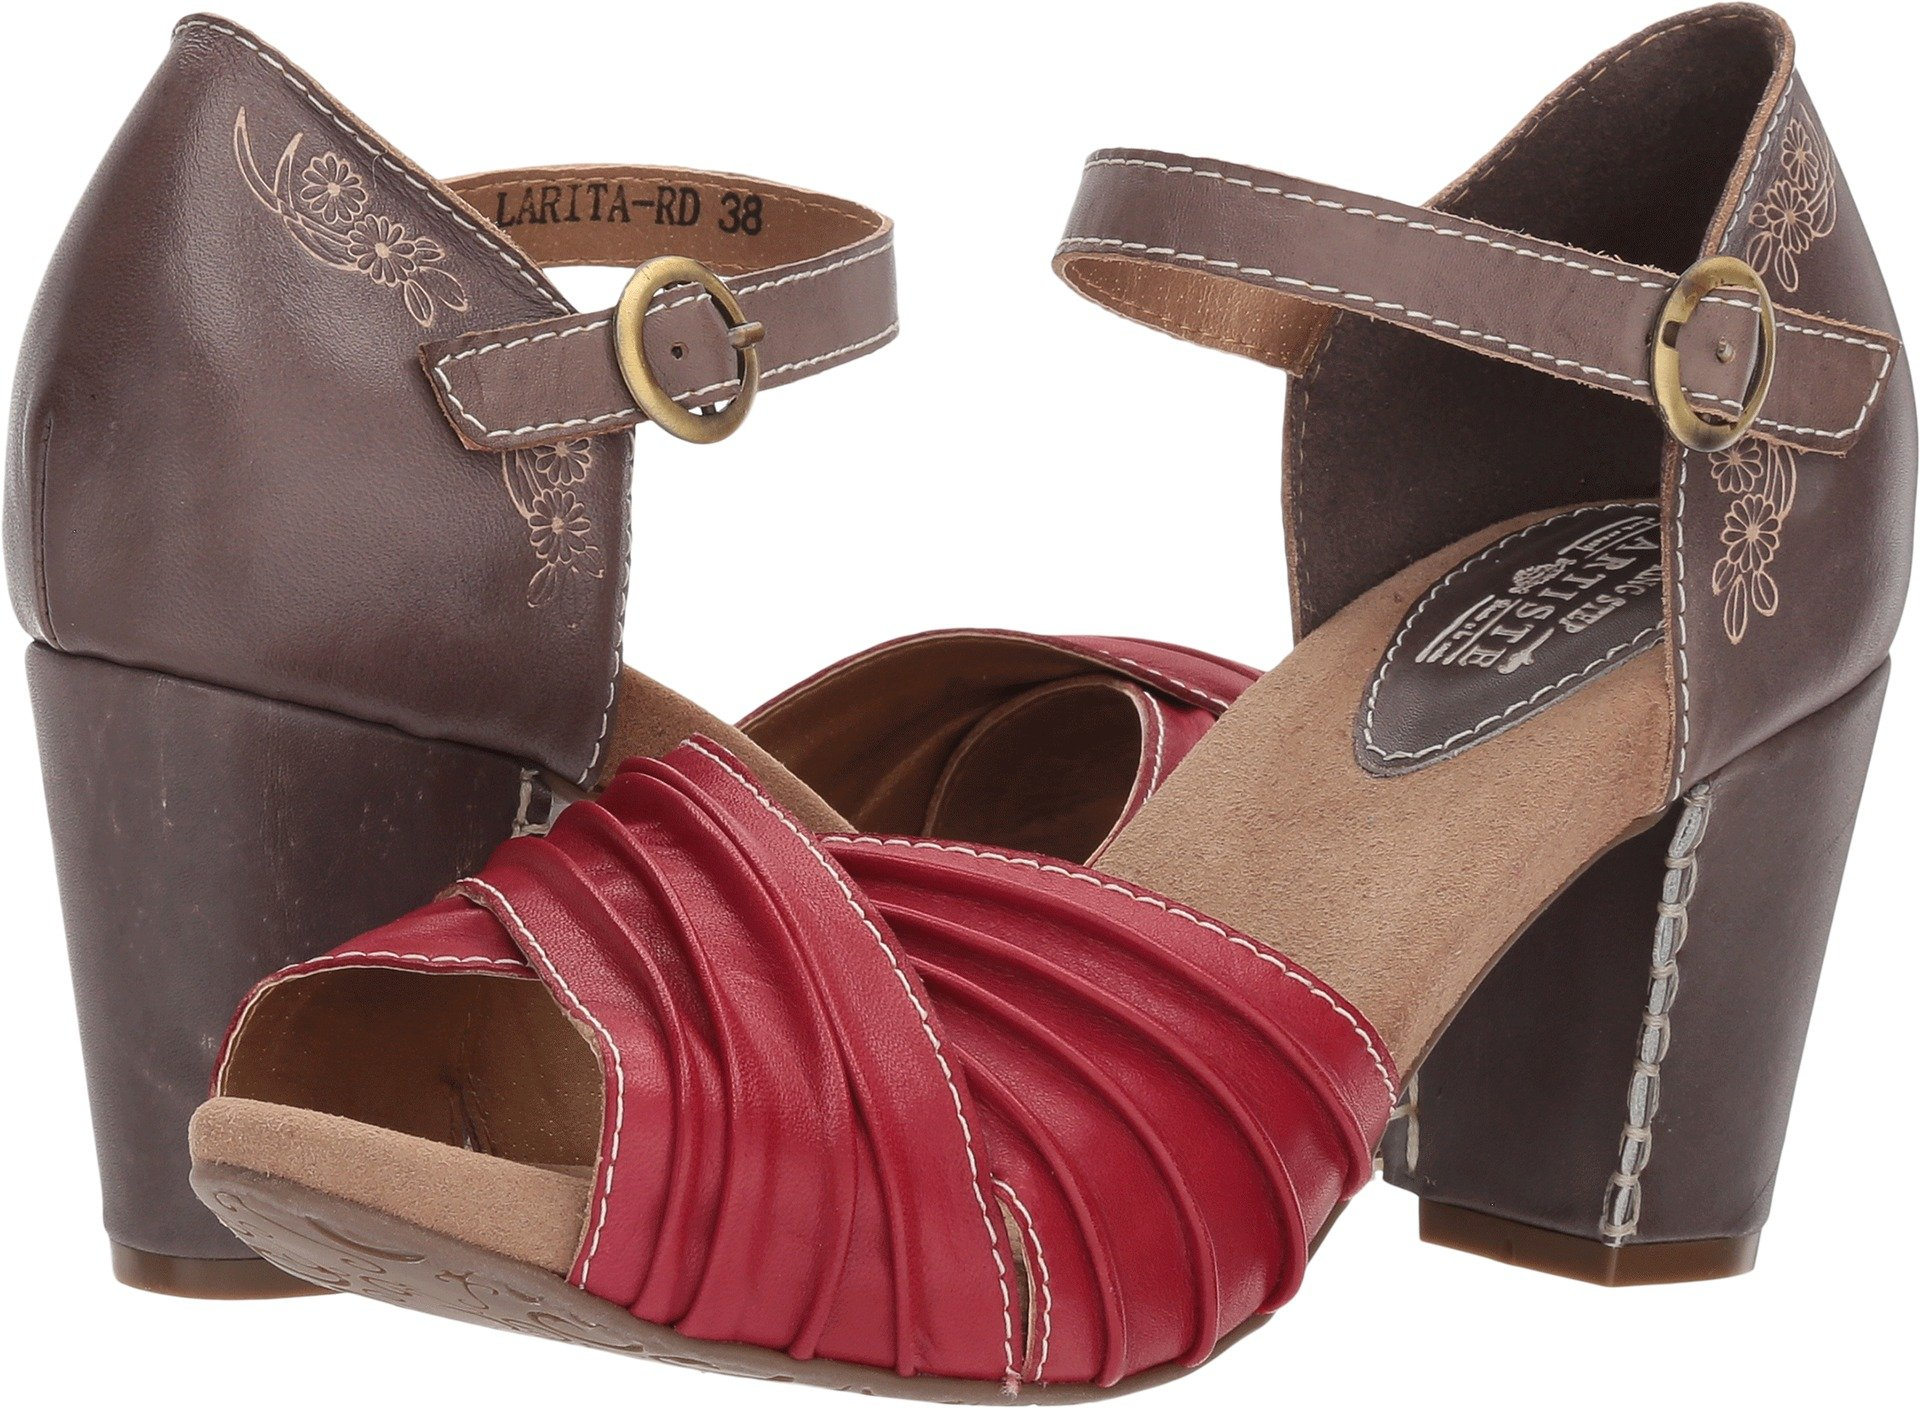 L'Artiste by Spring Step Women's Style Larita Red EURO Size 39 Leather Sandal